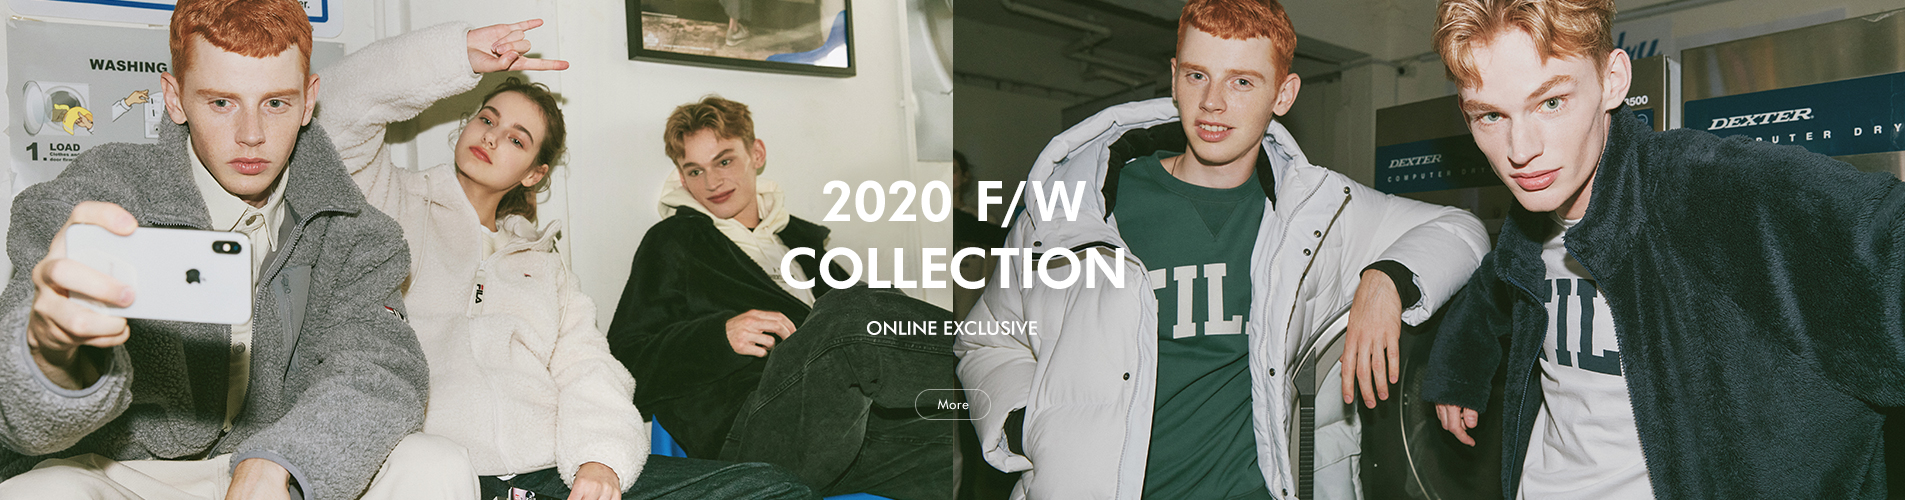 20FW COLLECTION